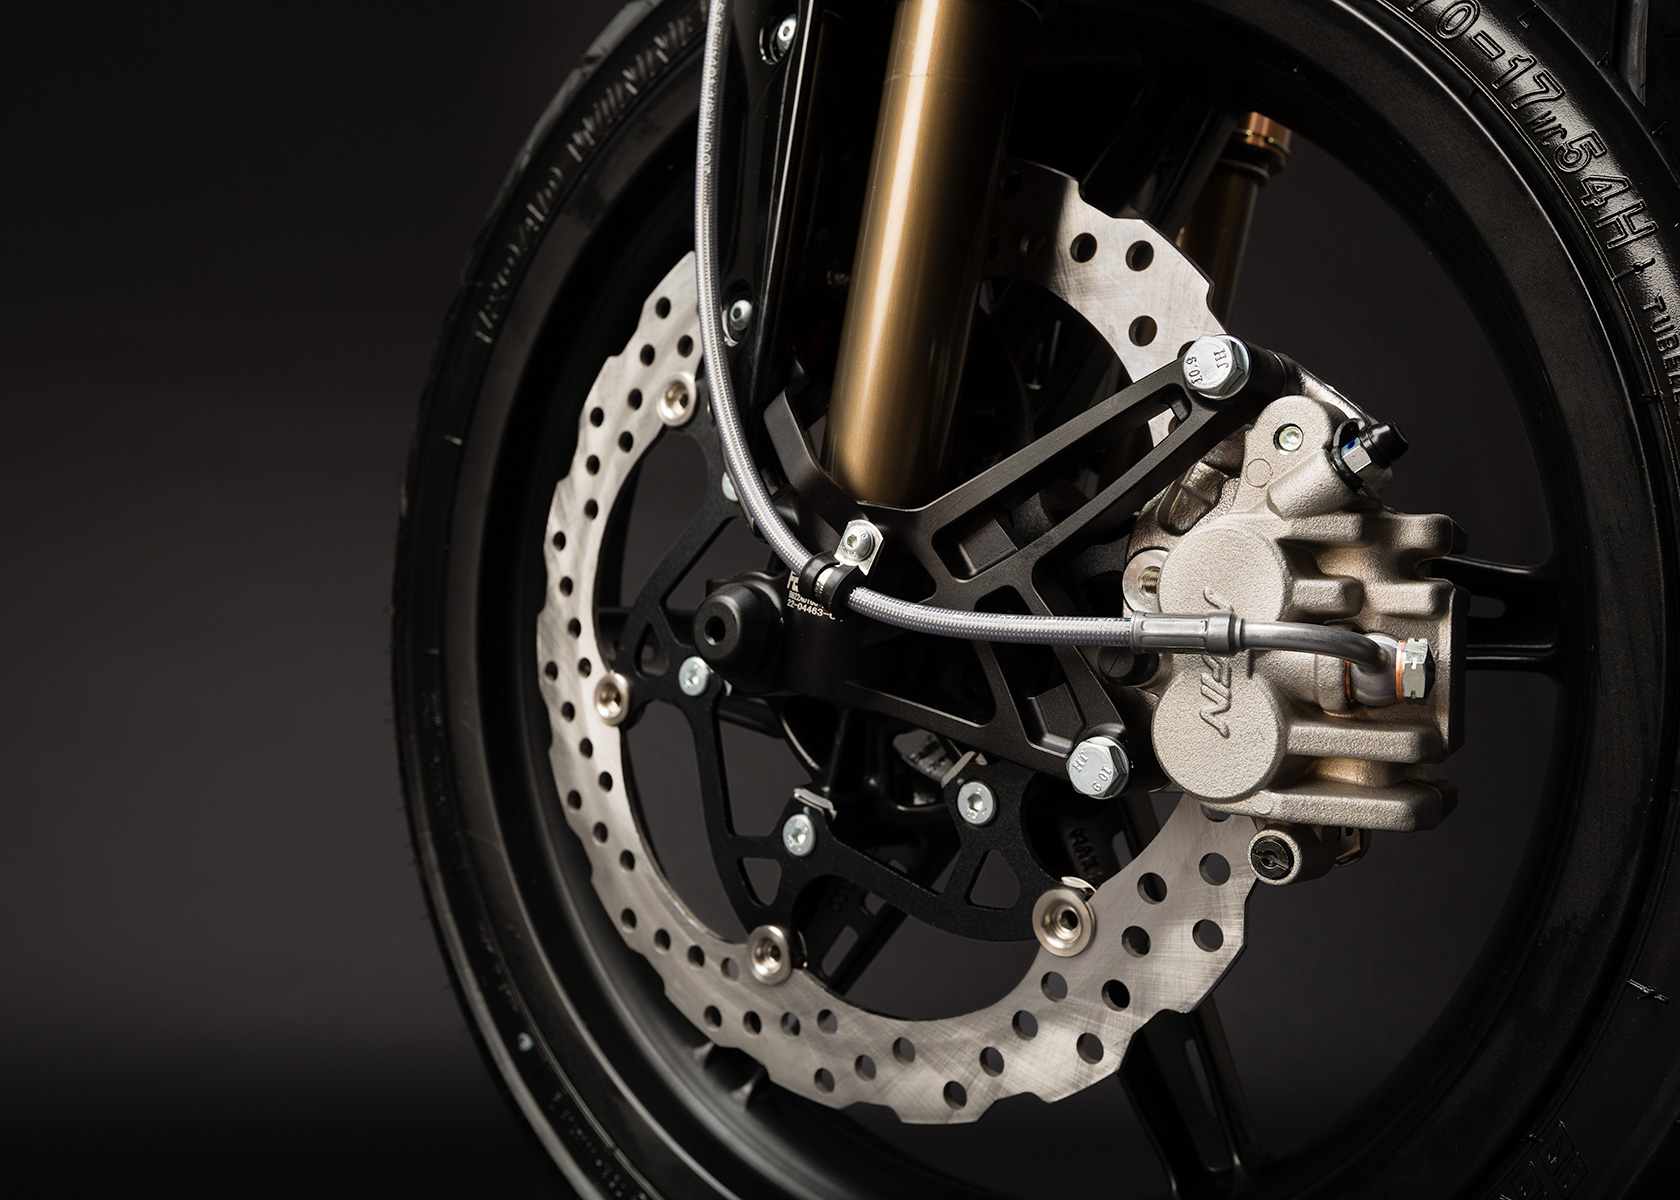 '.2013 Zero S Electric Motorcycle: Front brake.'